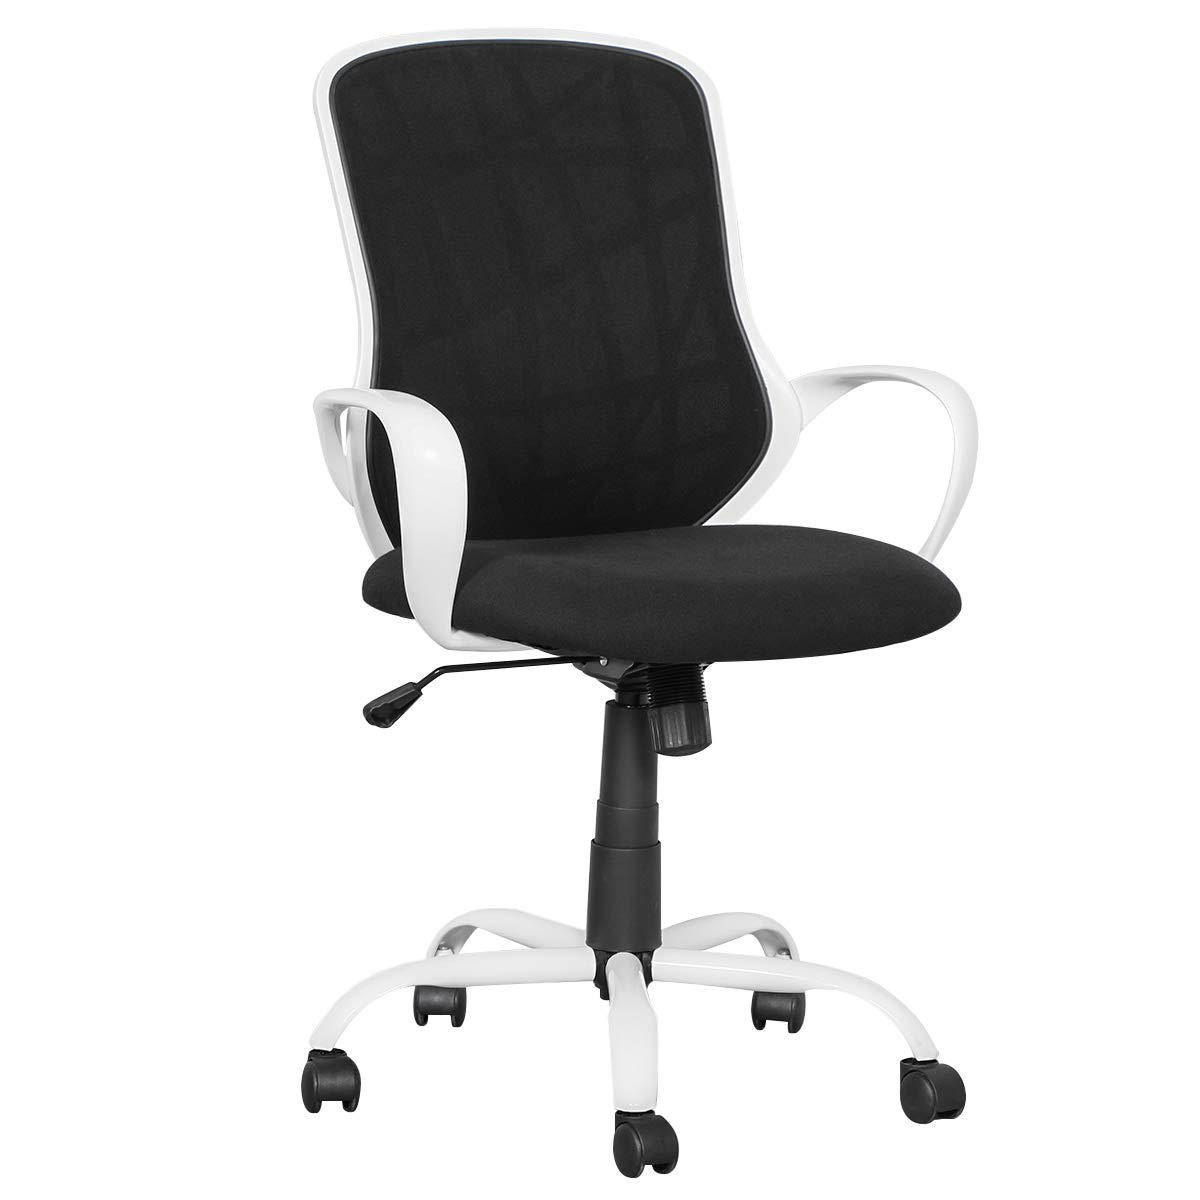 Coavas Mid Back Office-Chair Home Leisure Adjustable Swivel Gaming Desk Chair Ergonomic Task Computer Chair with Armrests,Classic White Black by Coavas